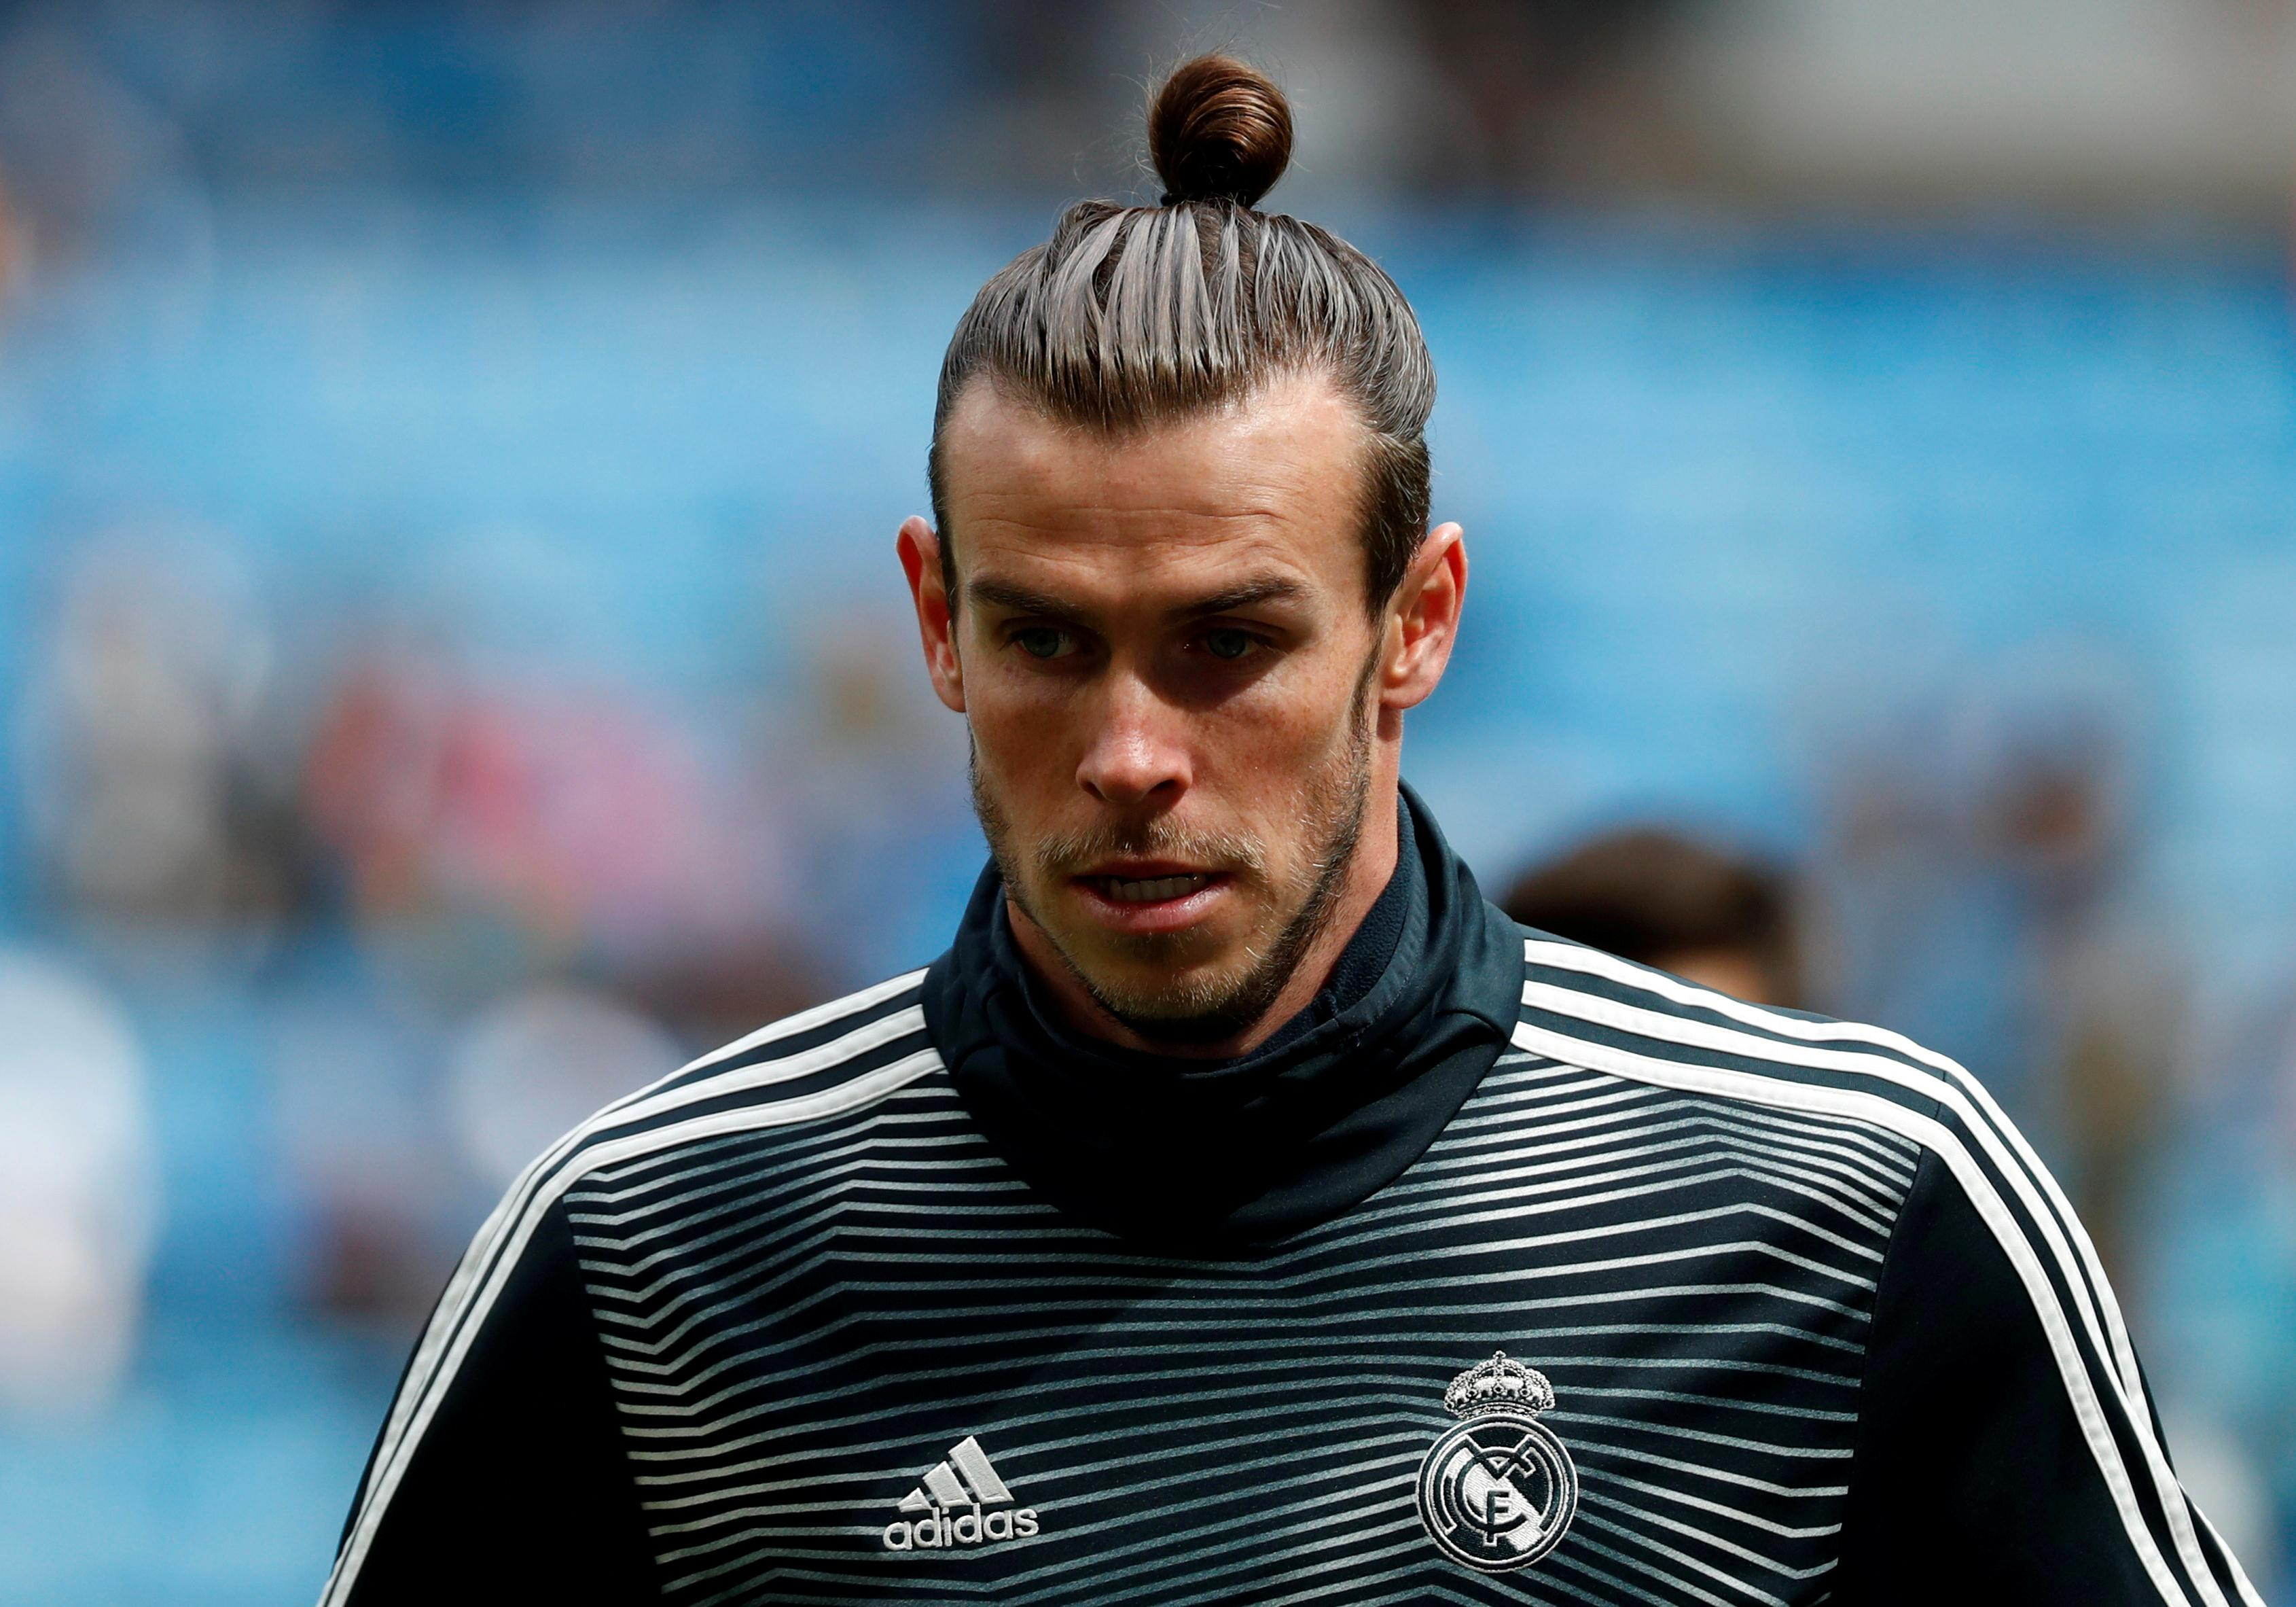 Loan move for Madrid's Bale 'not on the menu', says agent